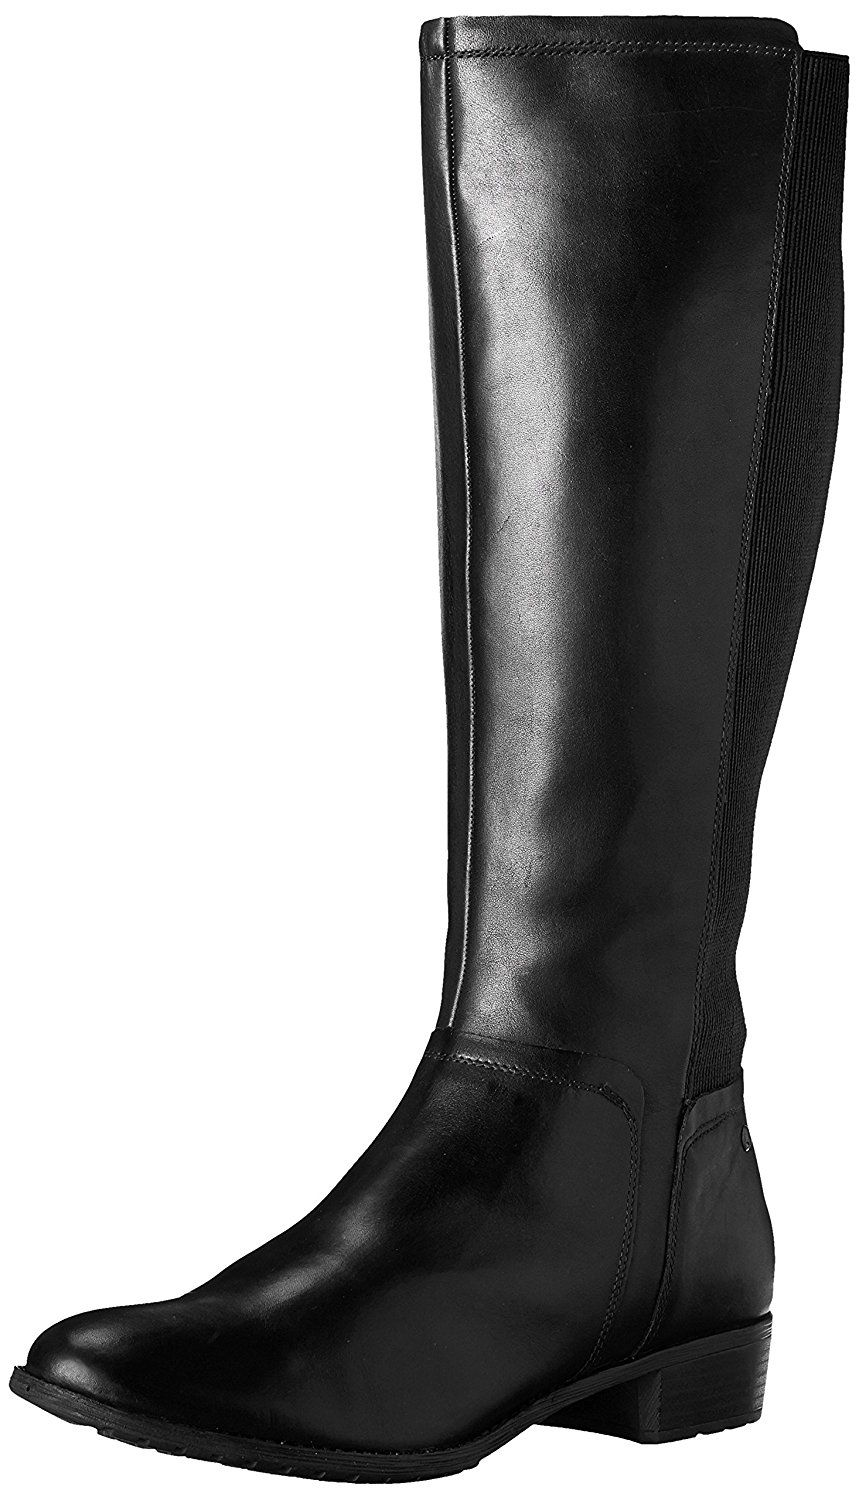 Hush Puppies Women S Lindy Chamber Wide Calf Riding Boot Wow I Love This Check It Out Now Knee High Boots Boots Wide Calf Riding Boots Riding Boots